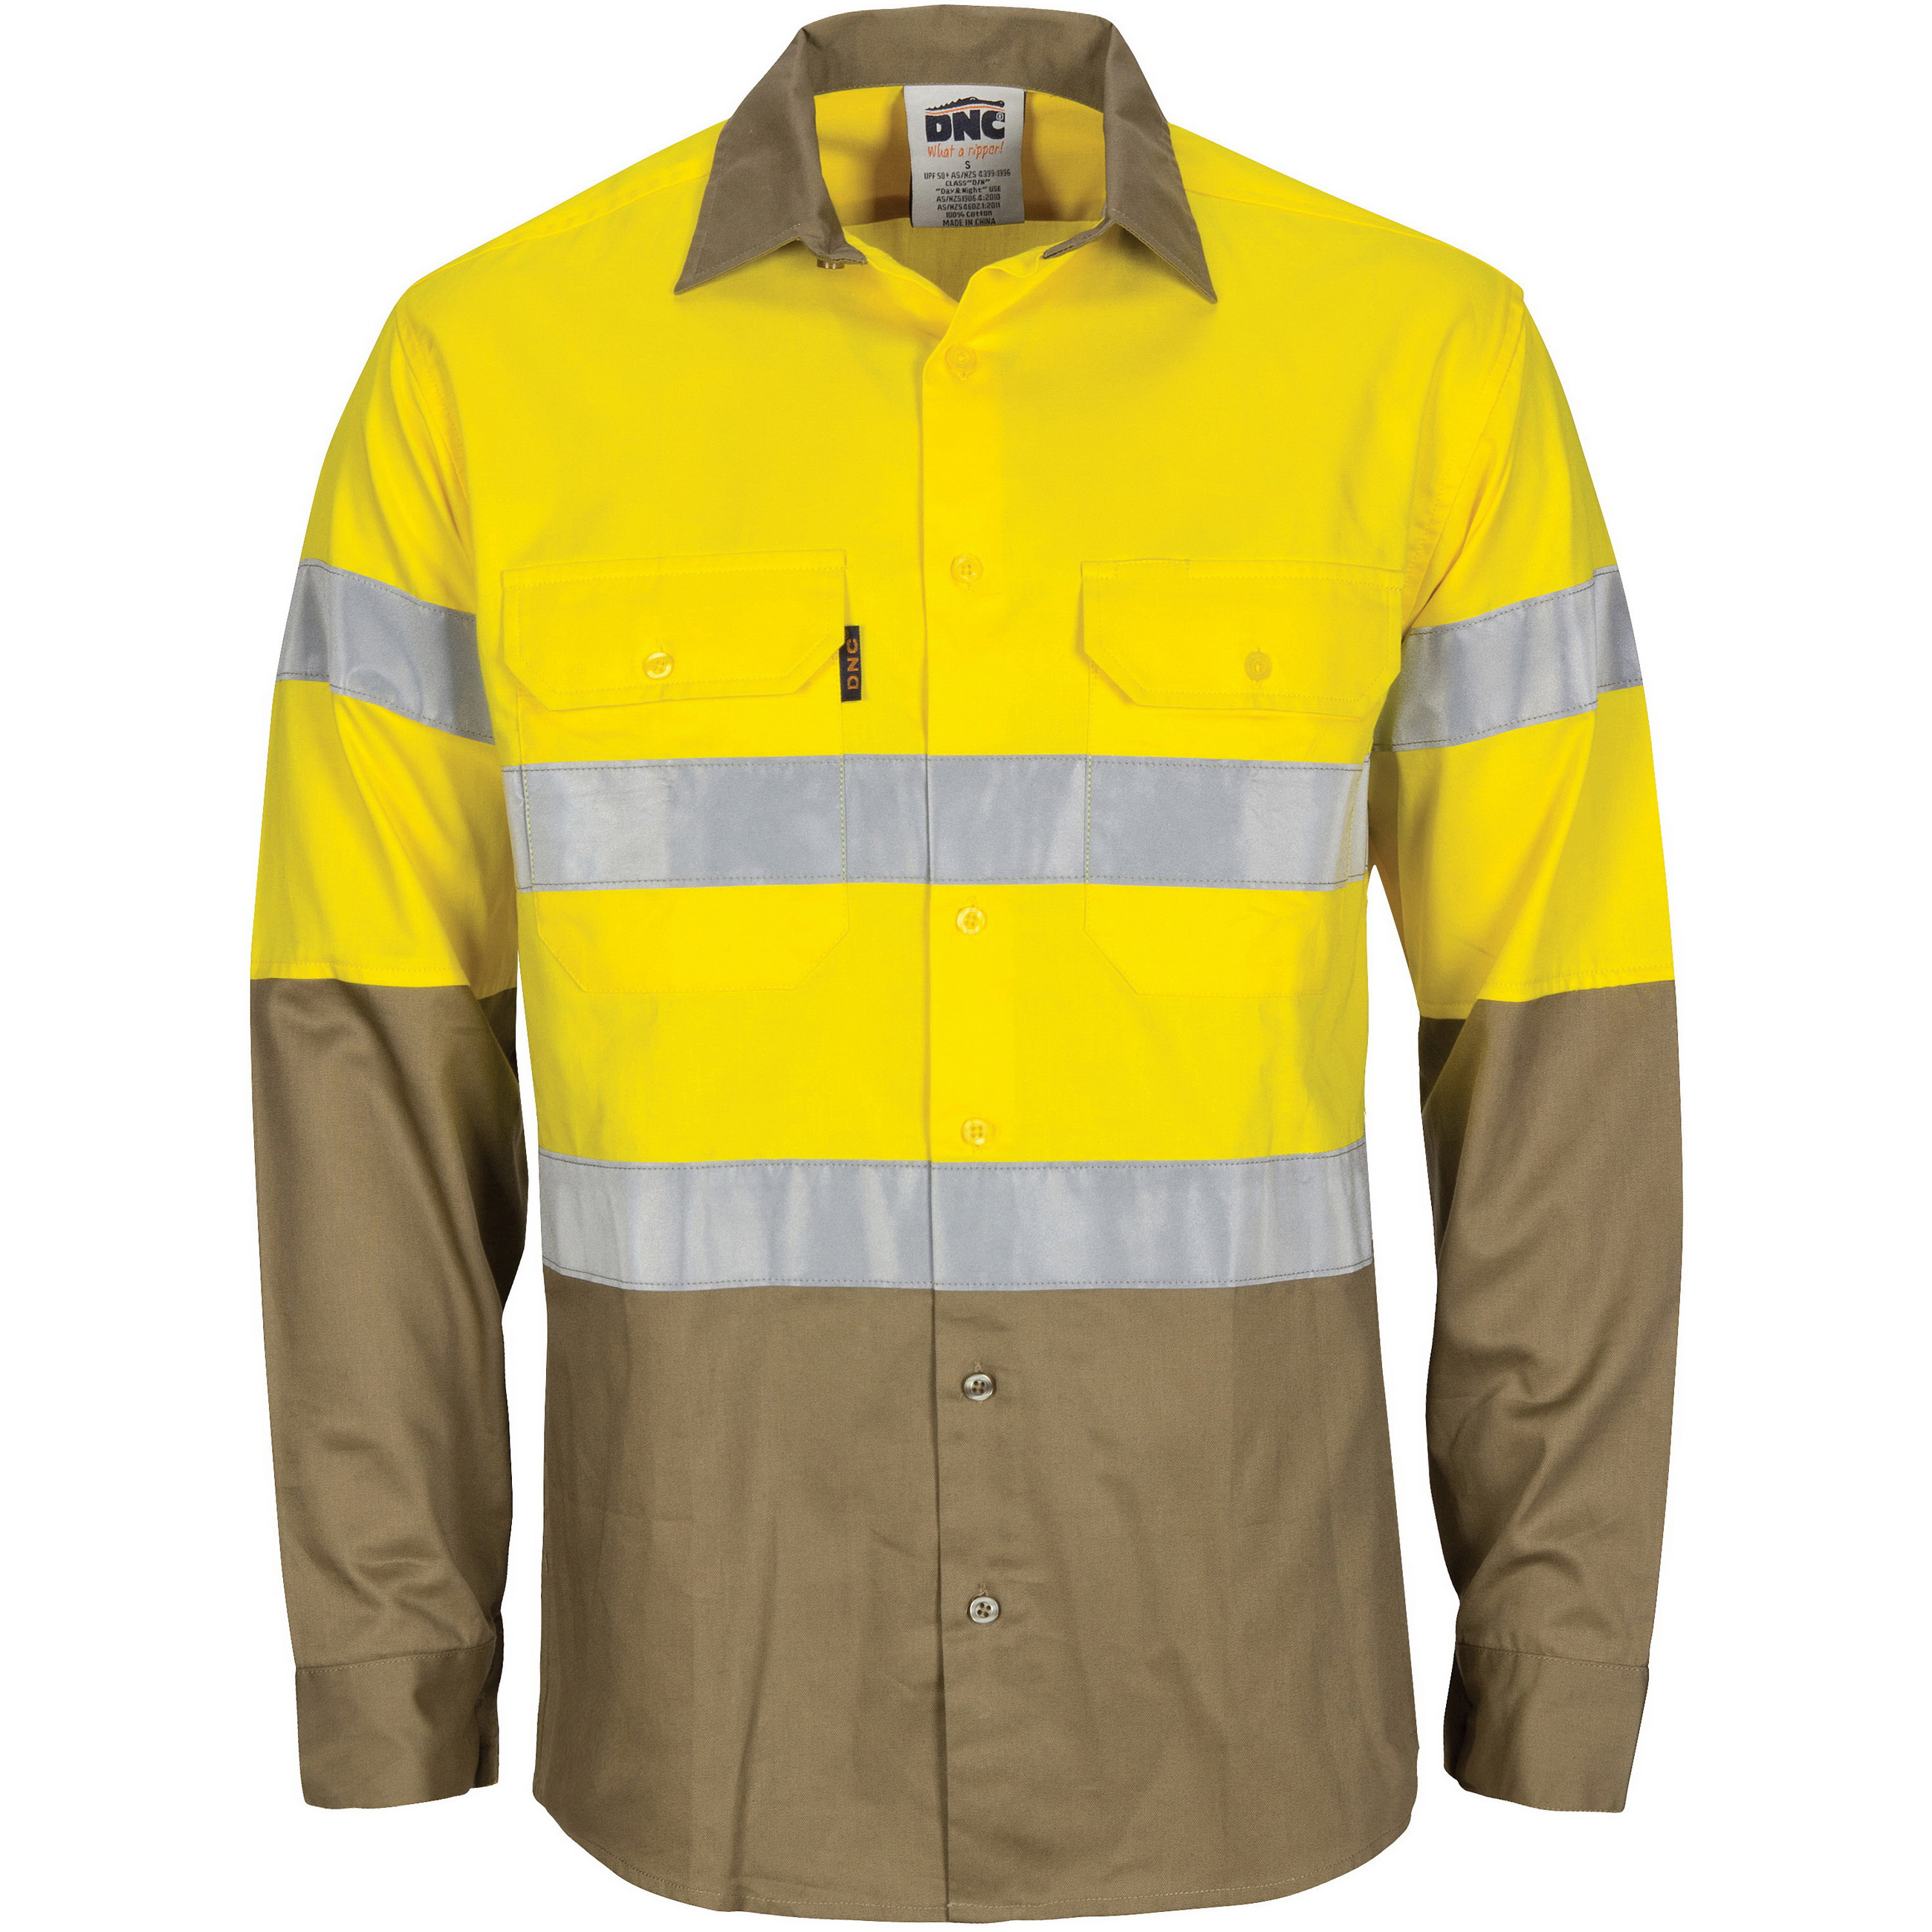 Safety Yellow Shirts >> Product Display - DNC Workwear - workwear, work wear, clothing, winter wear, polo shirts ...